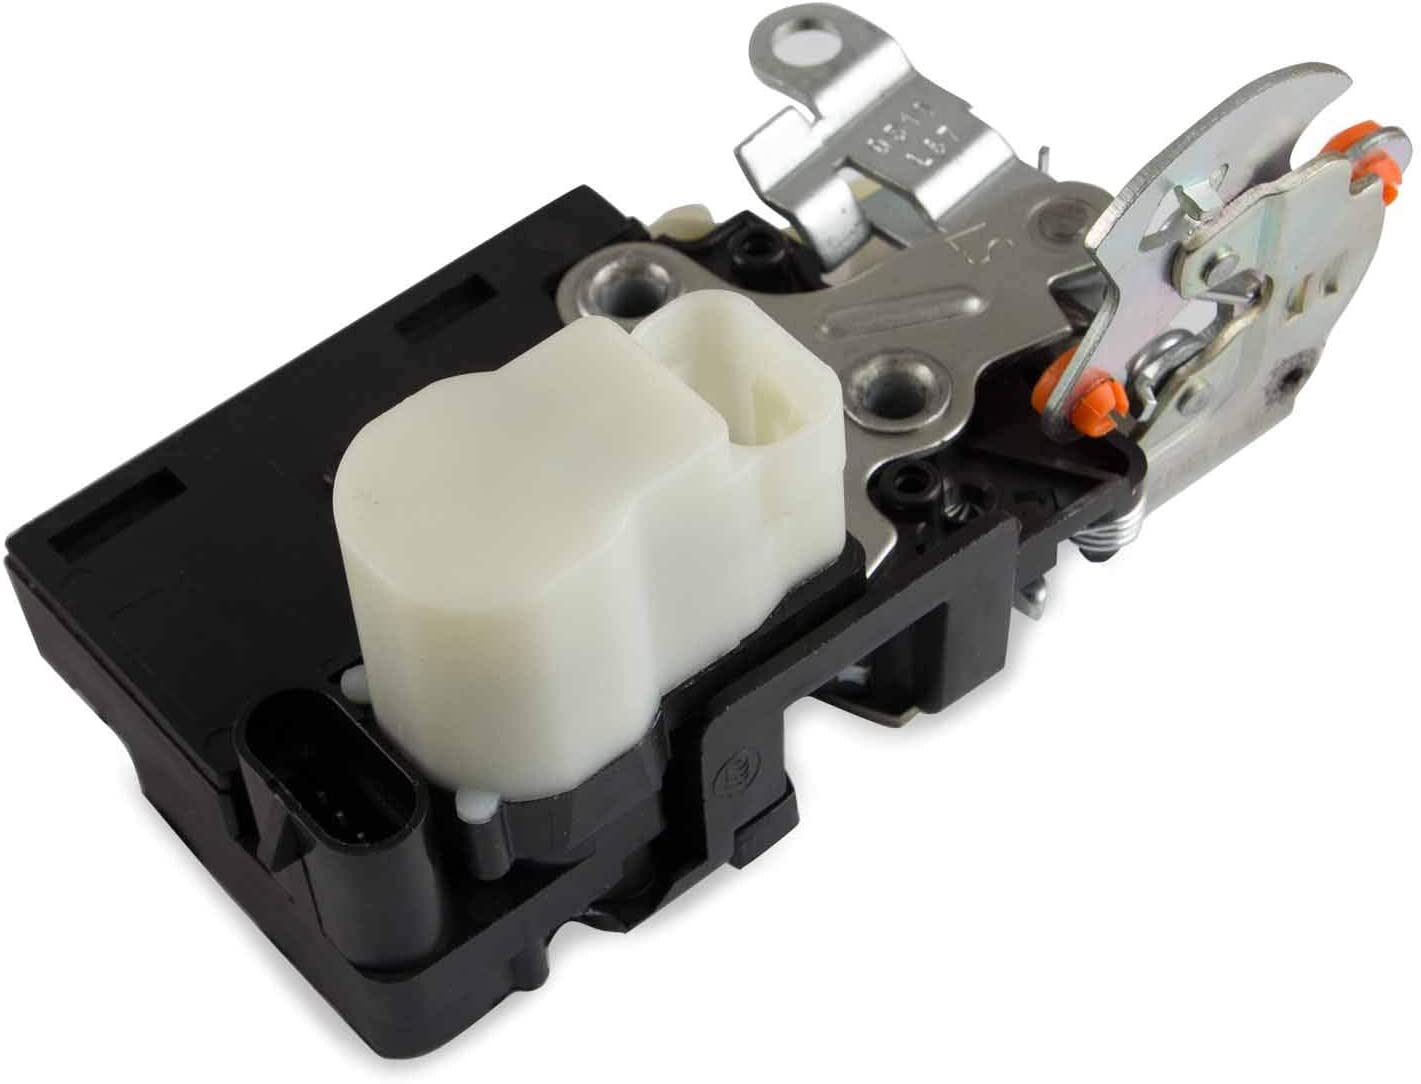 YHA 931-917 Front Right Side Door Lock Actuator Integrated Latch Assembly Compatible with 2002-2009 Trailblazer /& Envoy 2003-2004 Bravada 2004-2007 Rainier